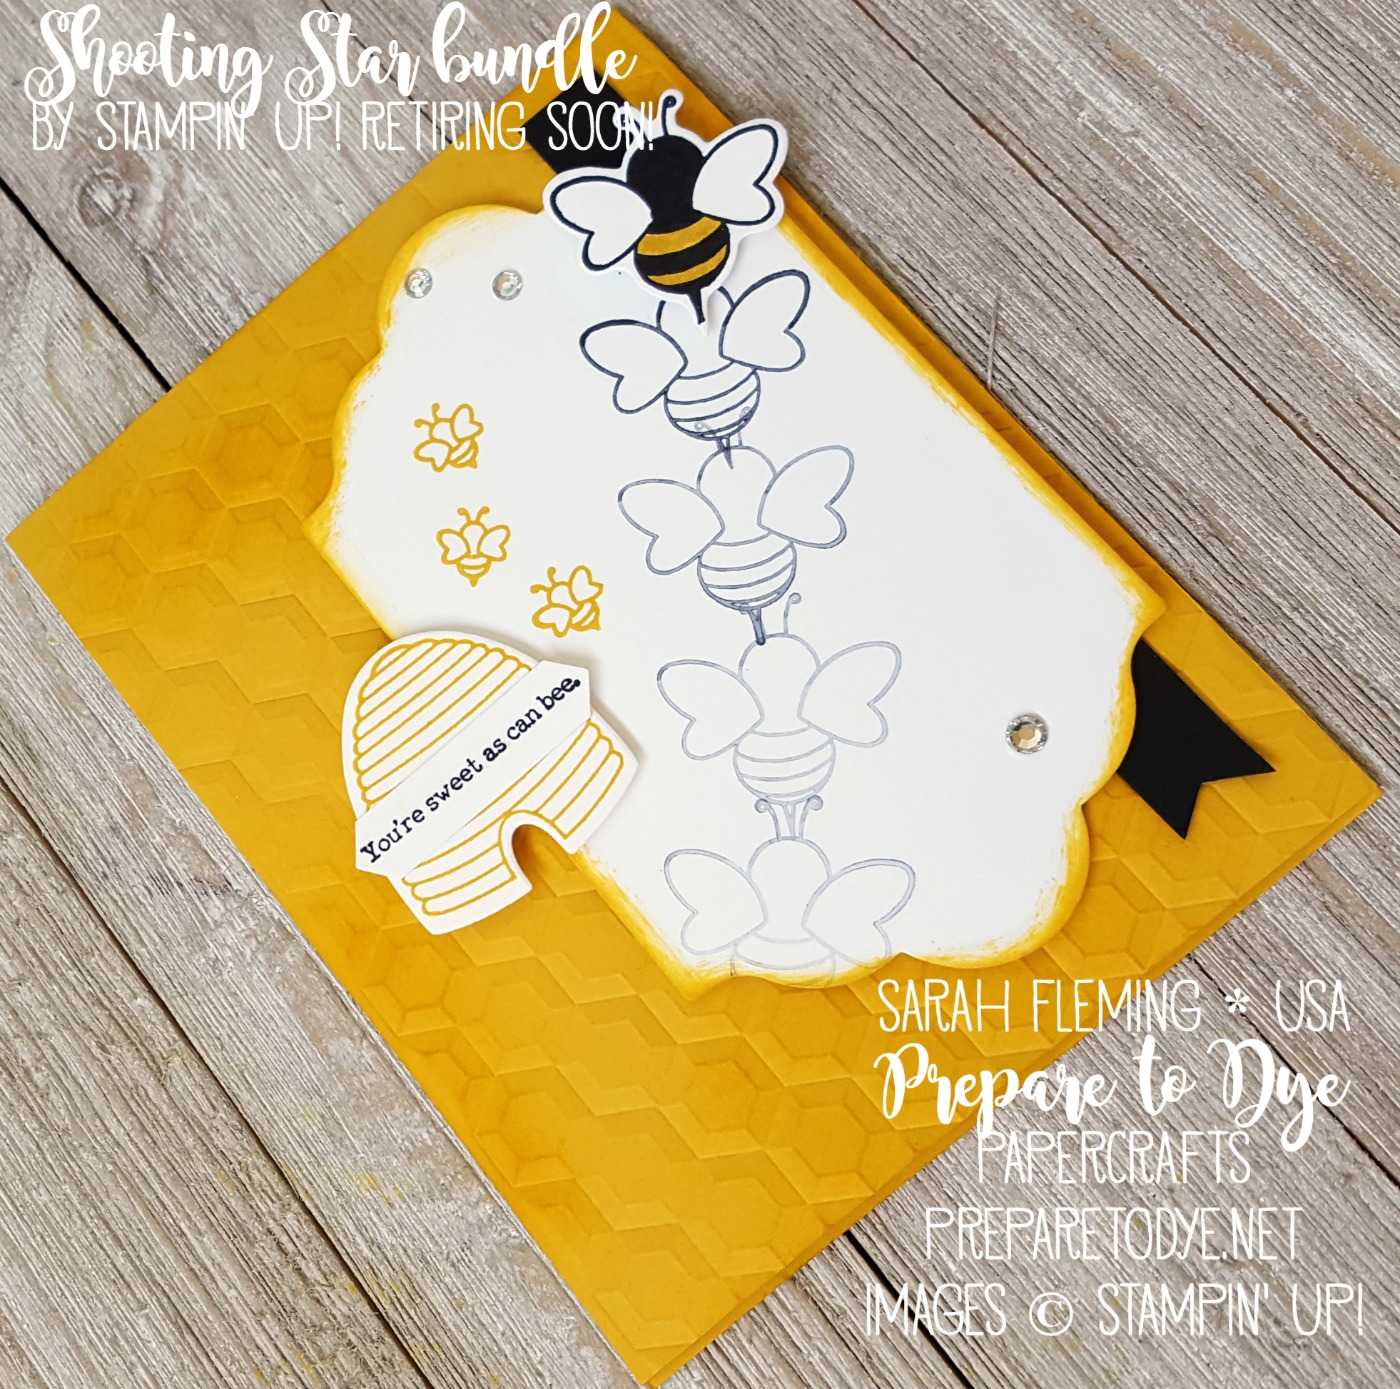 Stampin' Up! Shooting Star bundle is retiring soon! I love it with a little motion stamping and the Hexagons Dynamic Embossing Folder - Sarah Fleming - Prepare to Dye Papercrafts